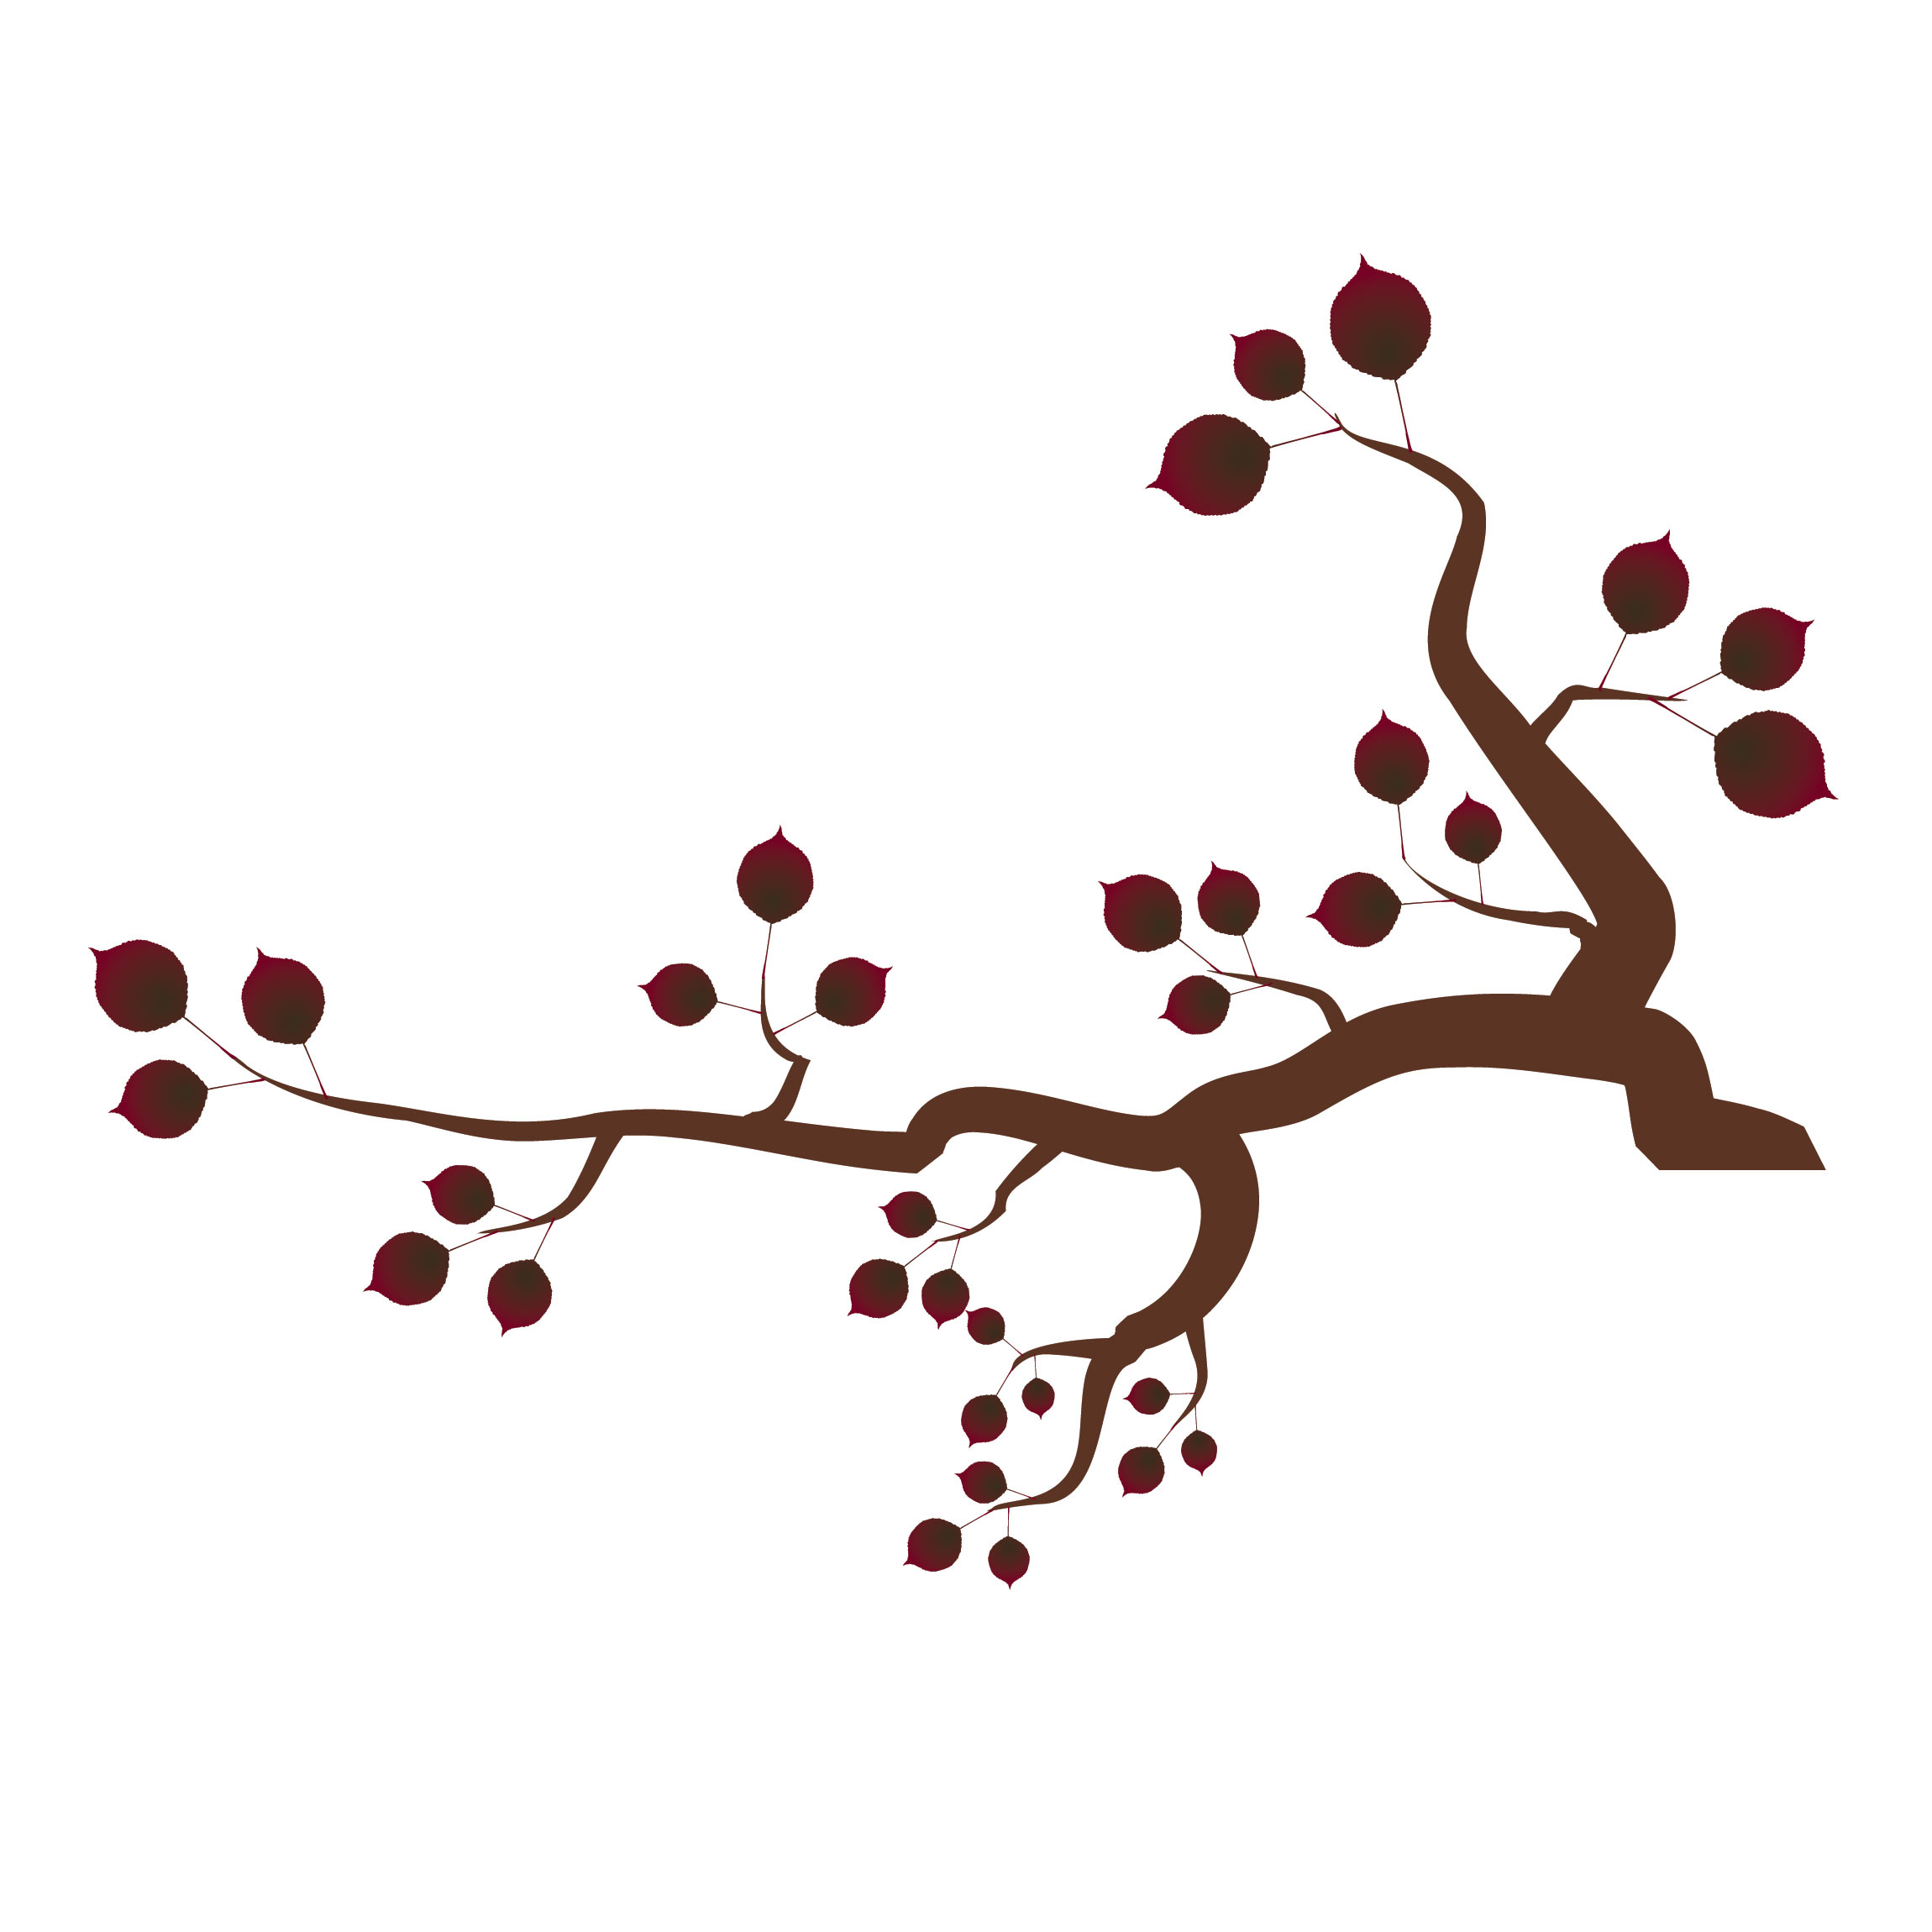 Tree branch with red leaves clipart.